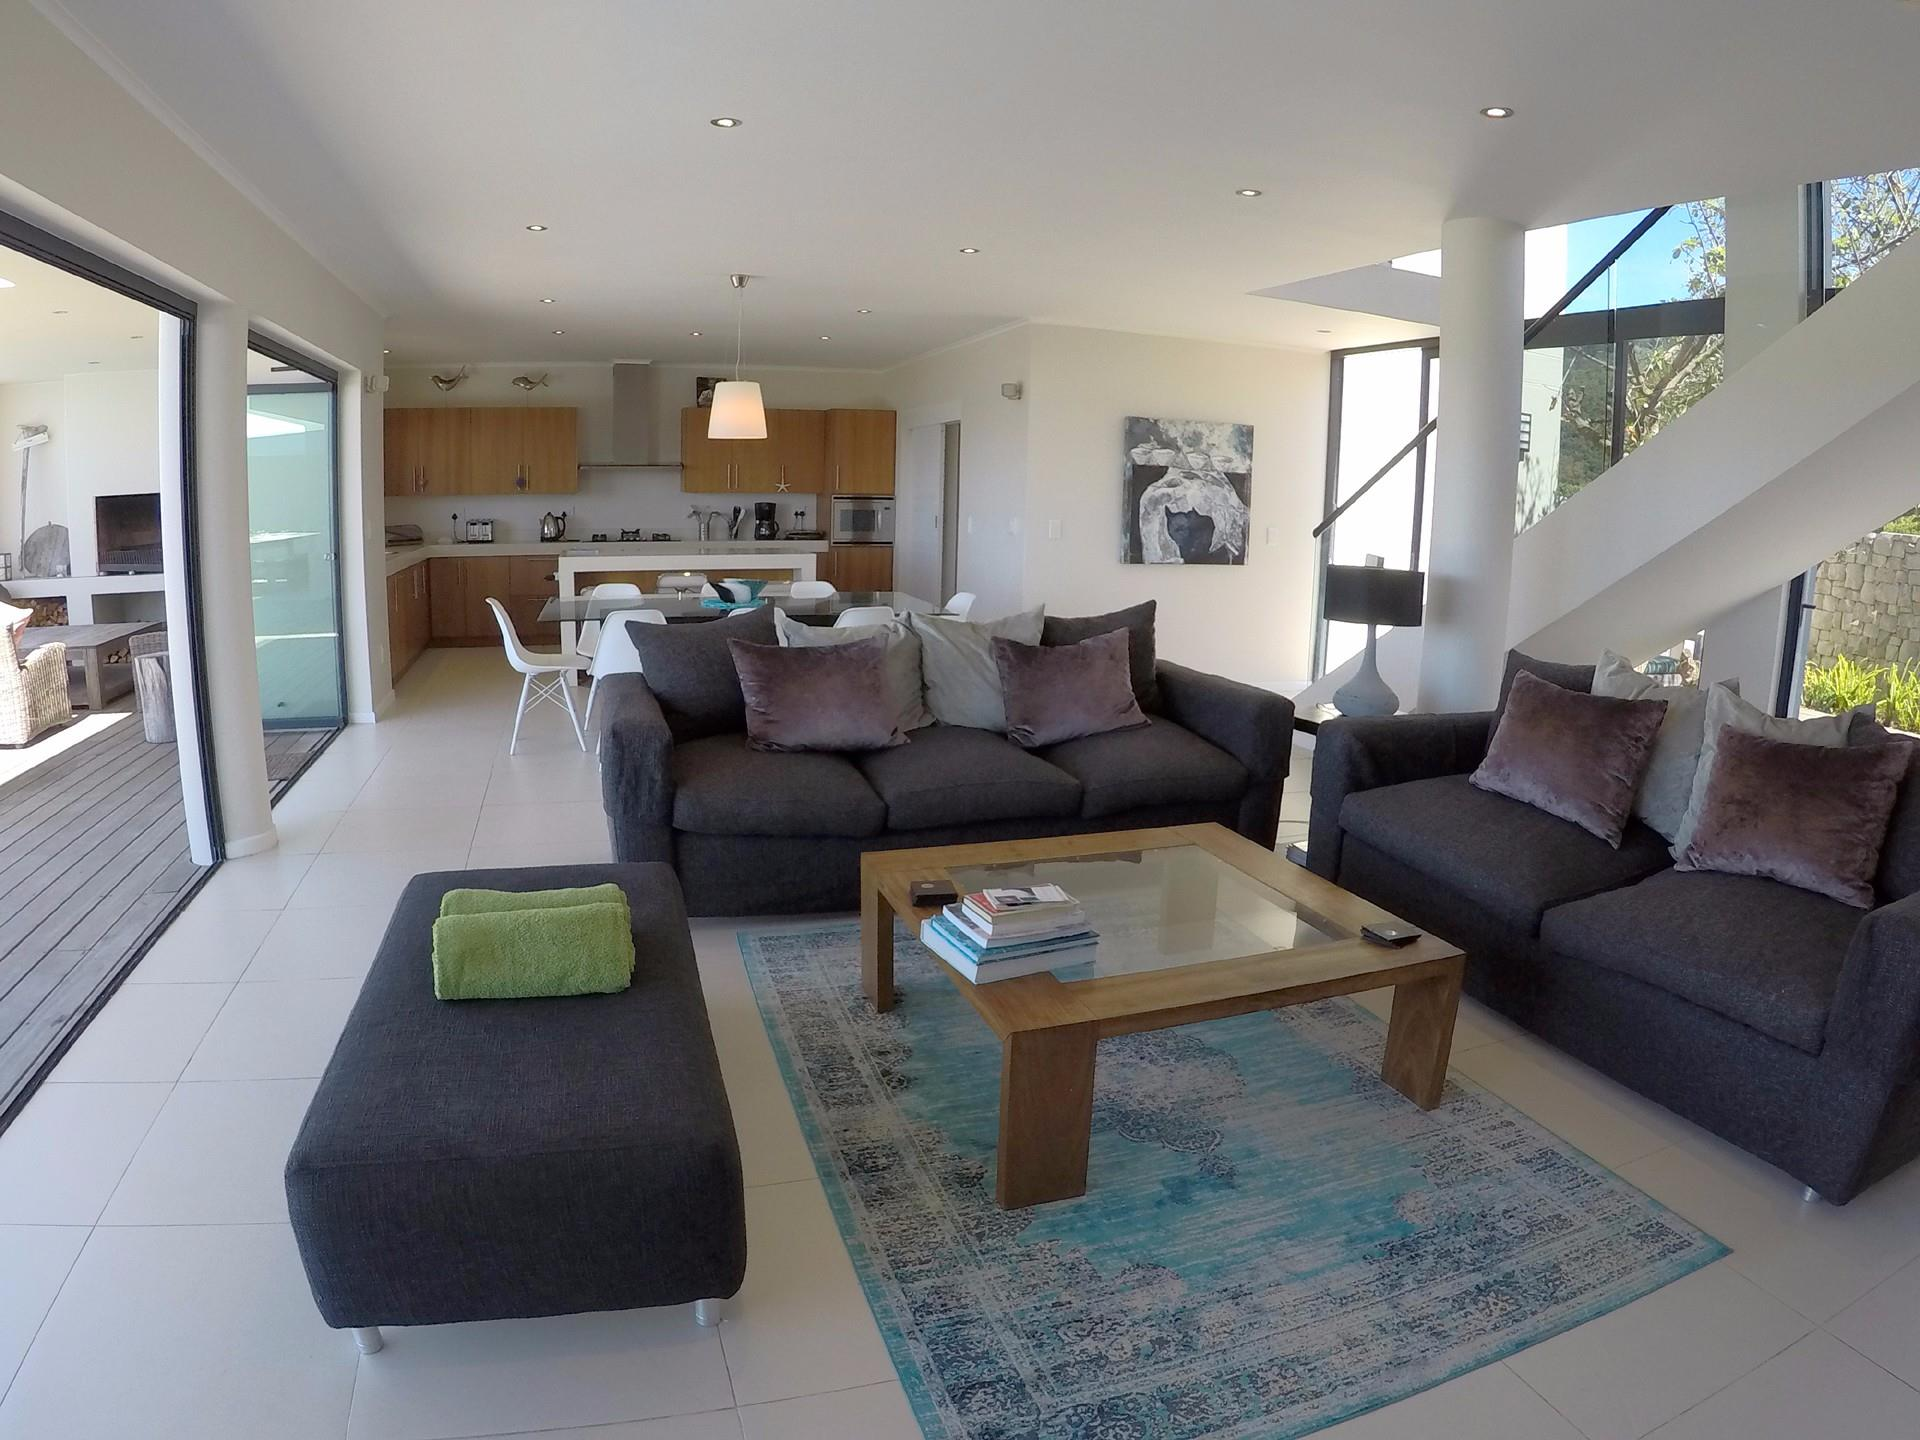 304/78 Whales Haven, Keurbooms, Plettenberg Bay - ZAF (photo 4)